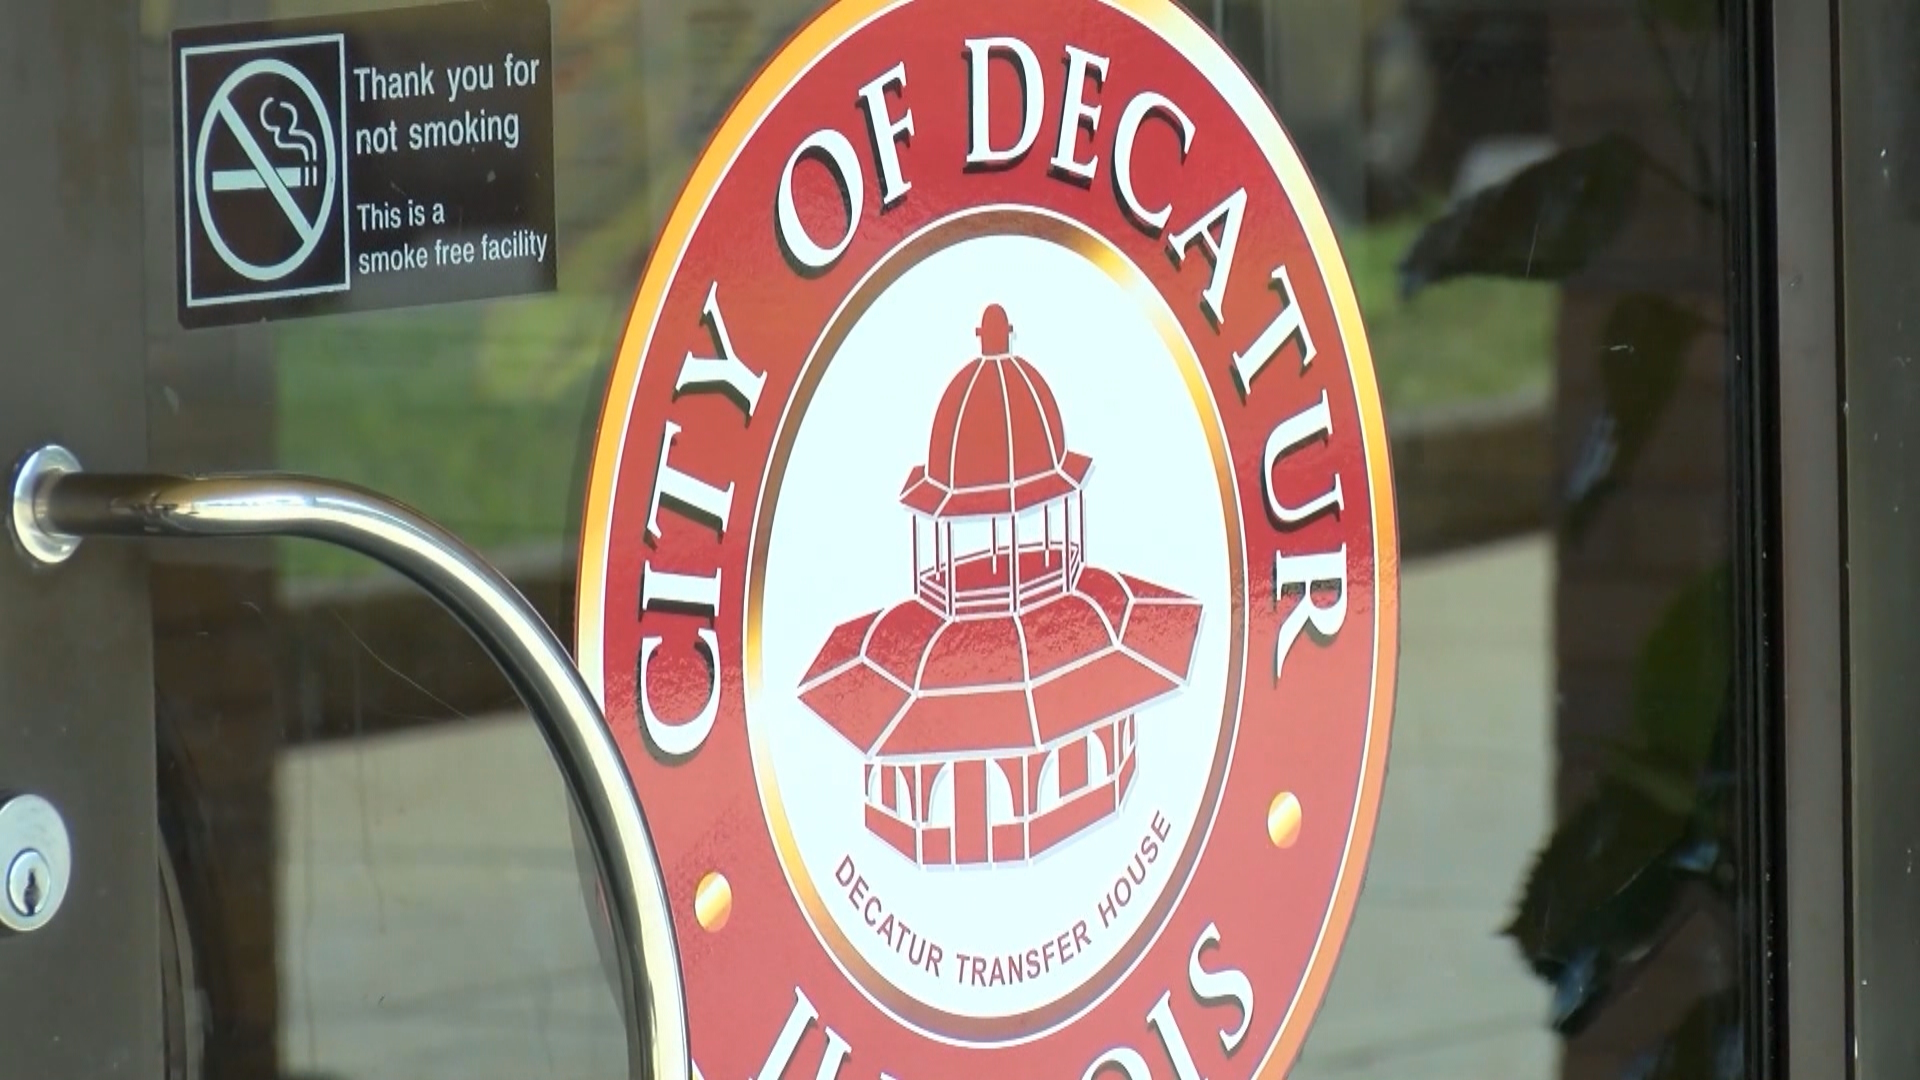 city of decatur_1506461686181.jpg